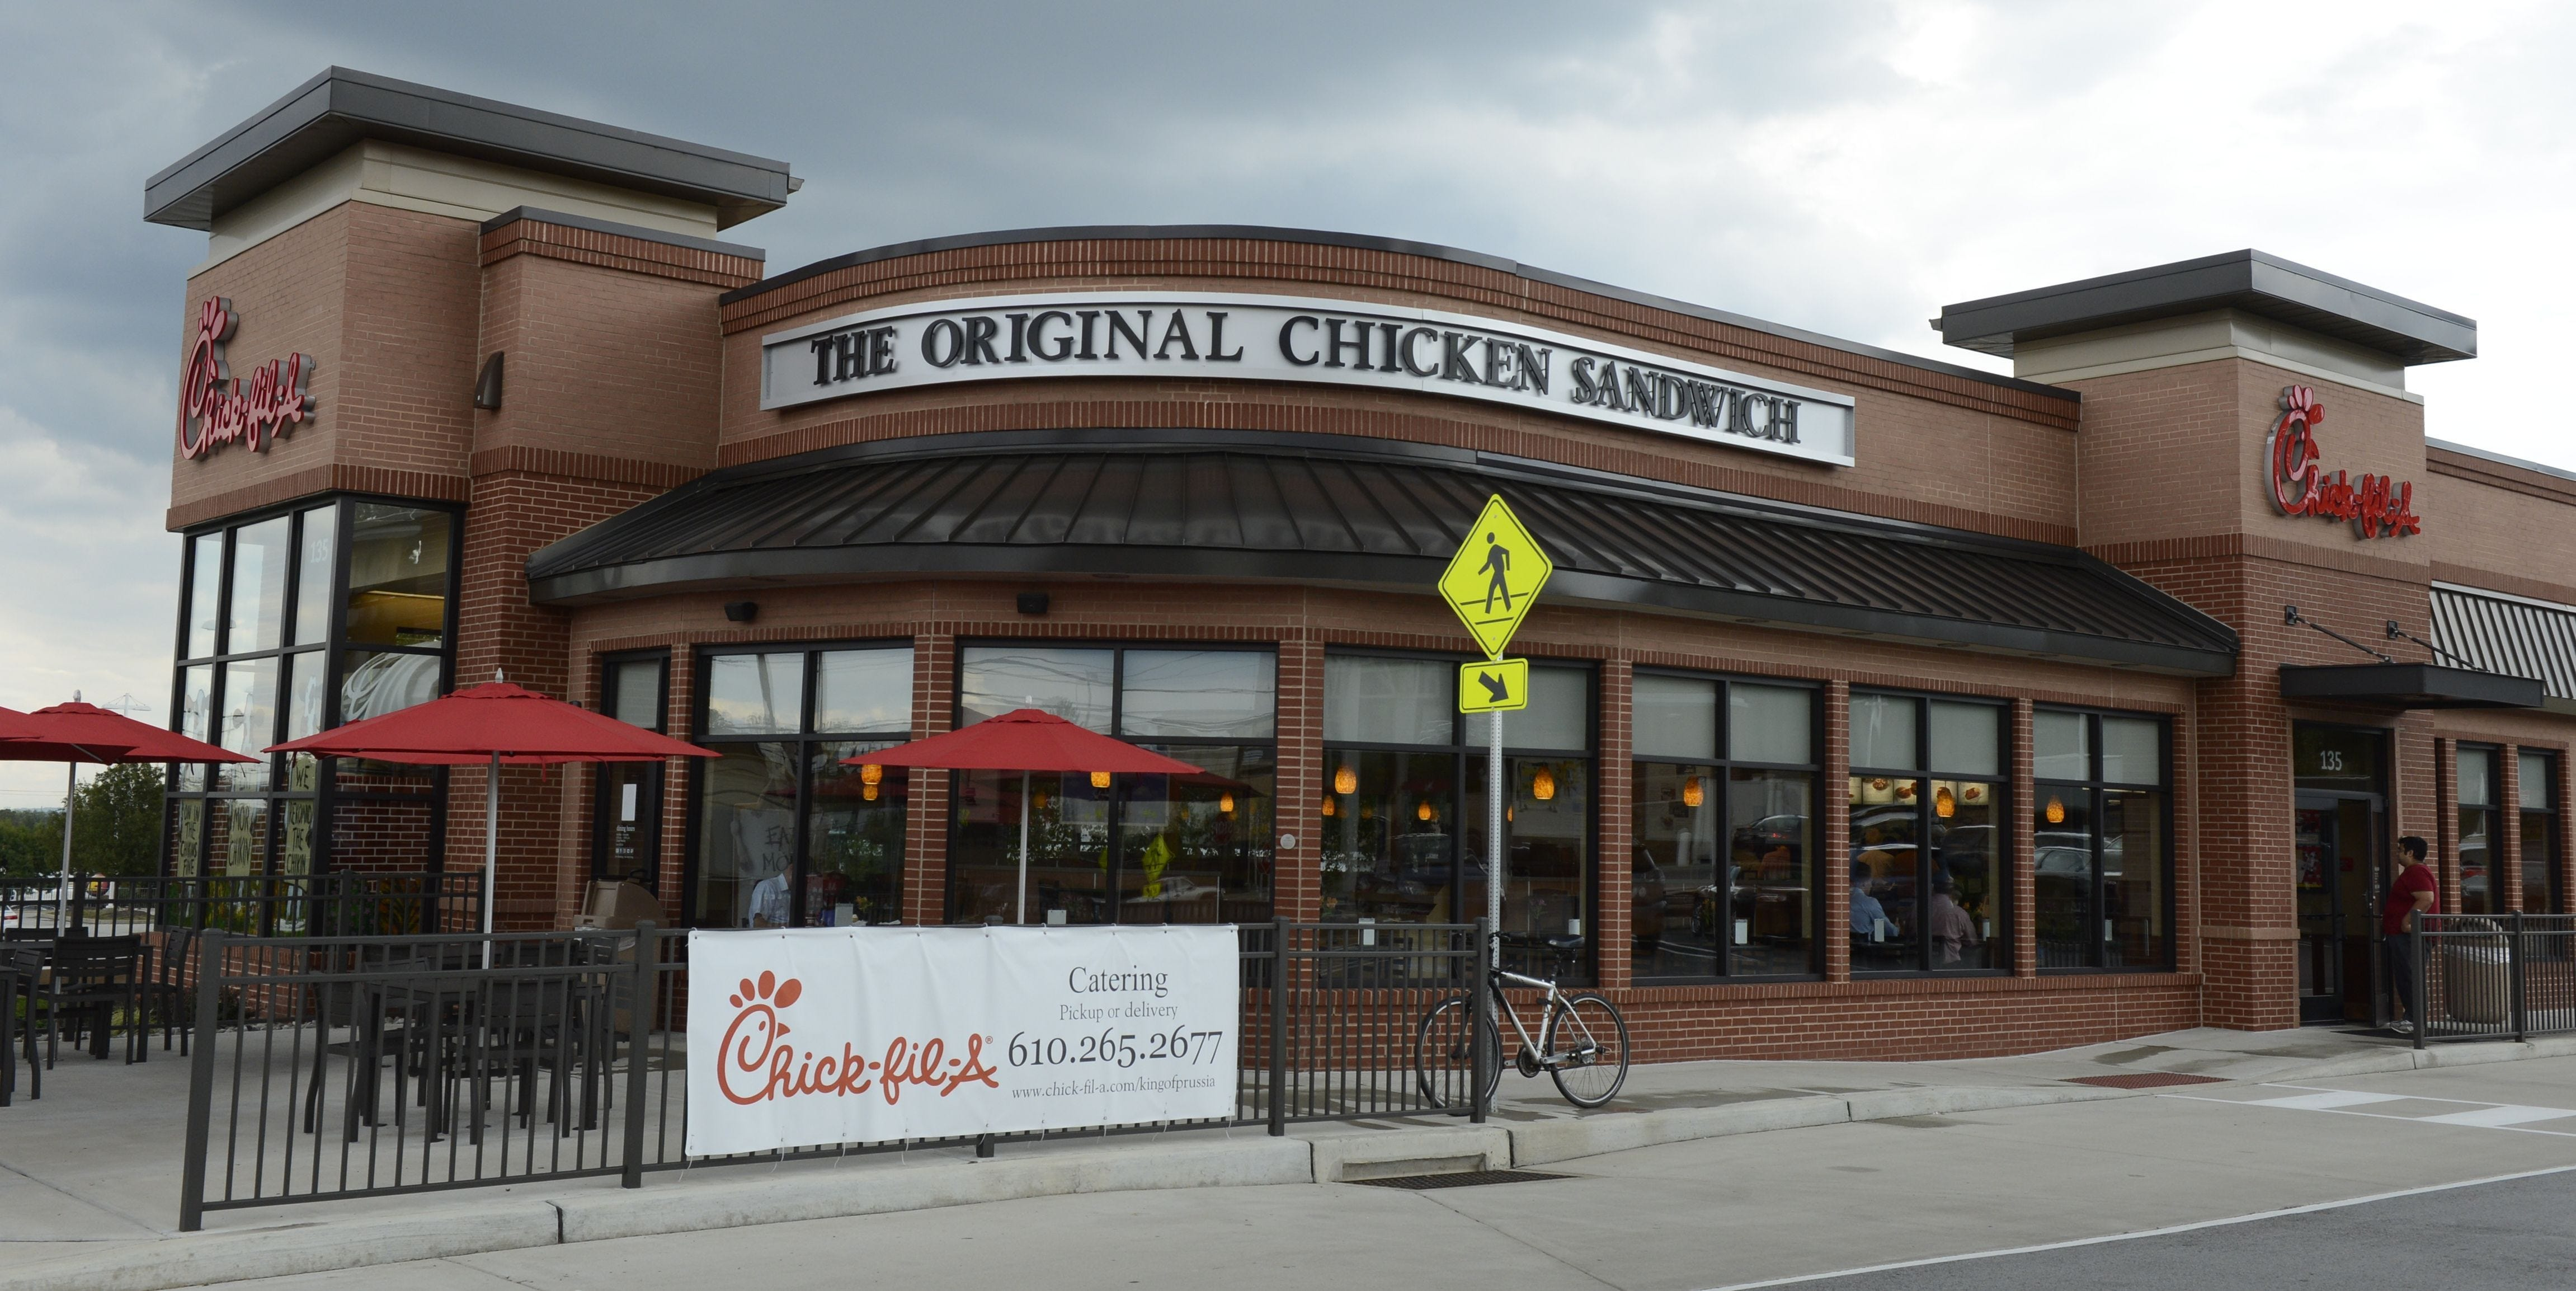 image about Printable Cow Spots Chick Fil a titled Costume up such as a cow in the direction of obtain absolutely free Chick-fil-A food items